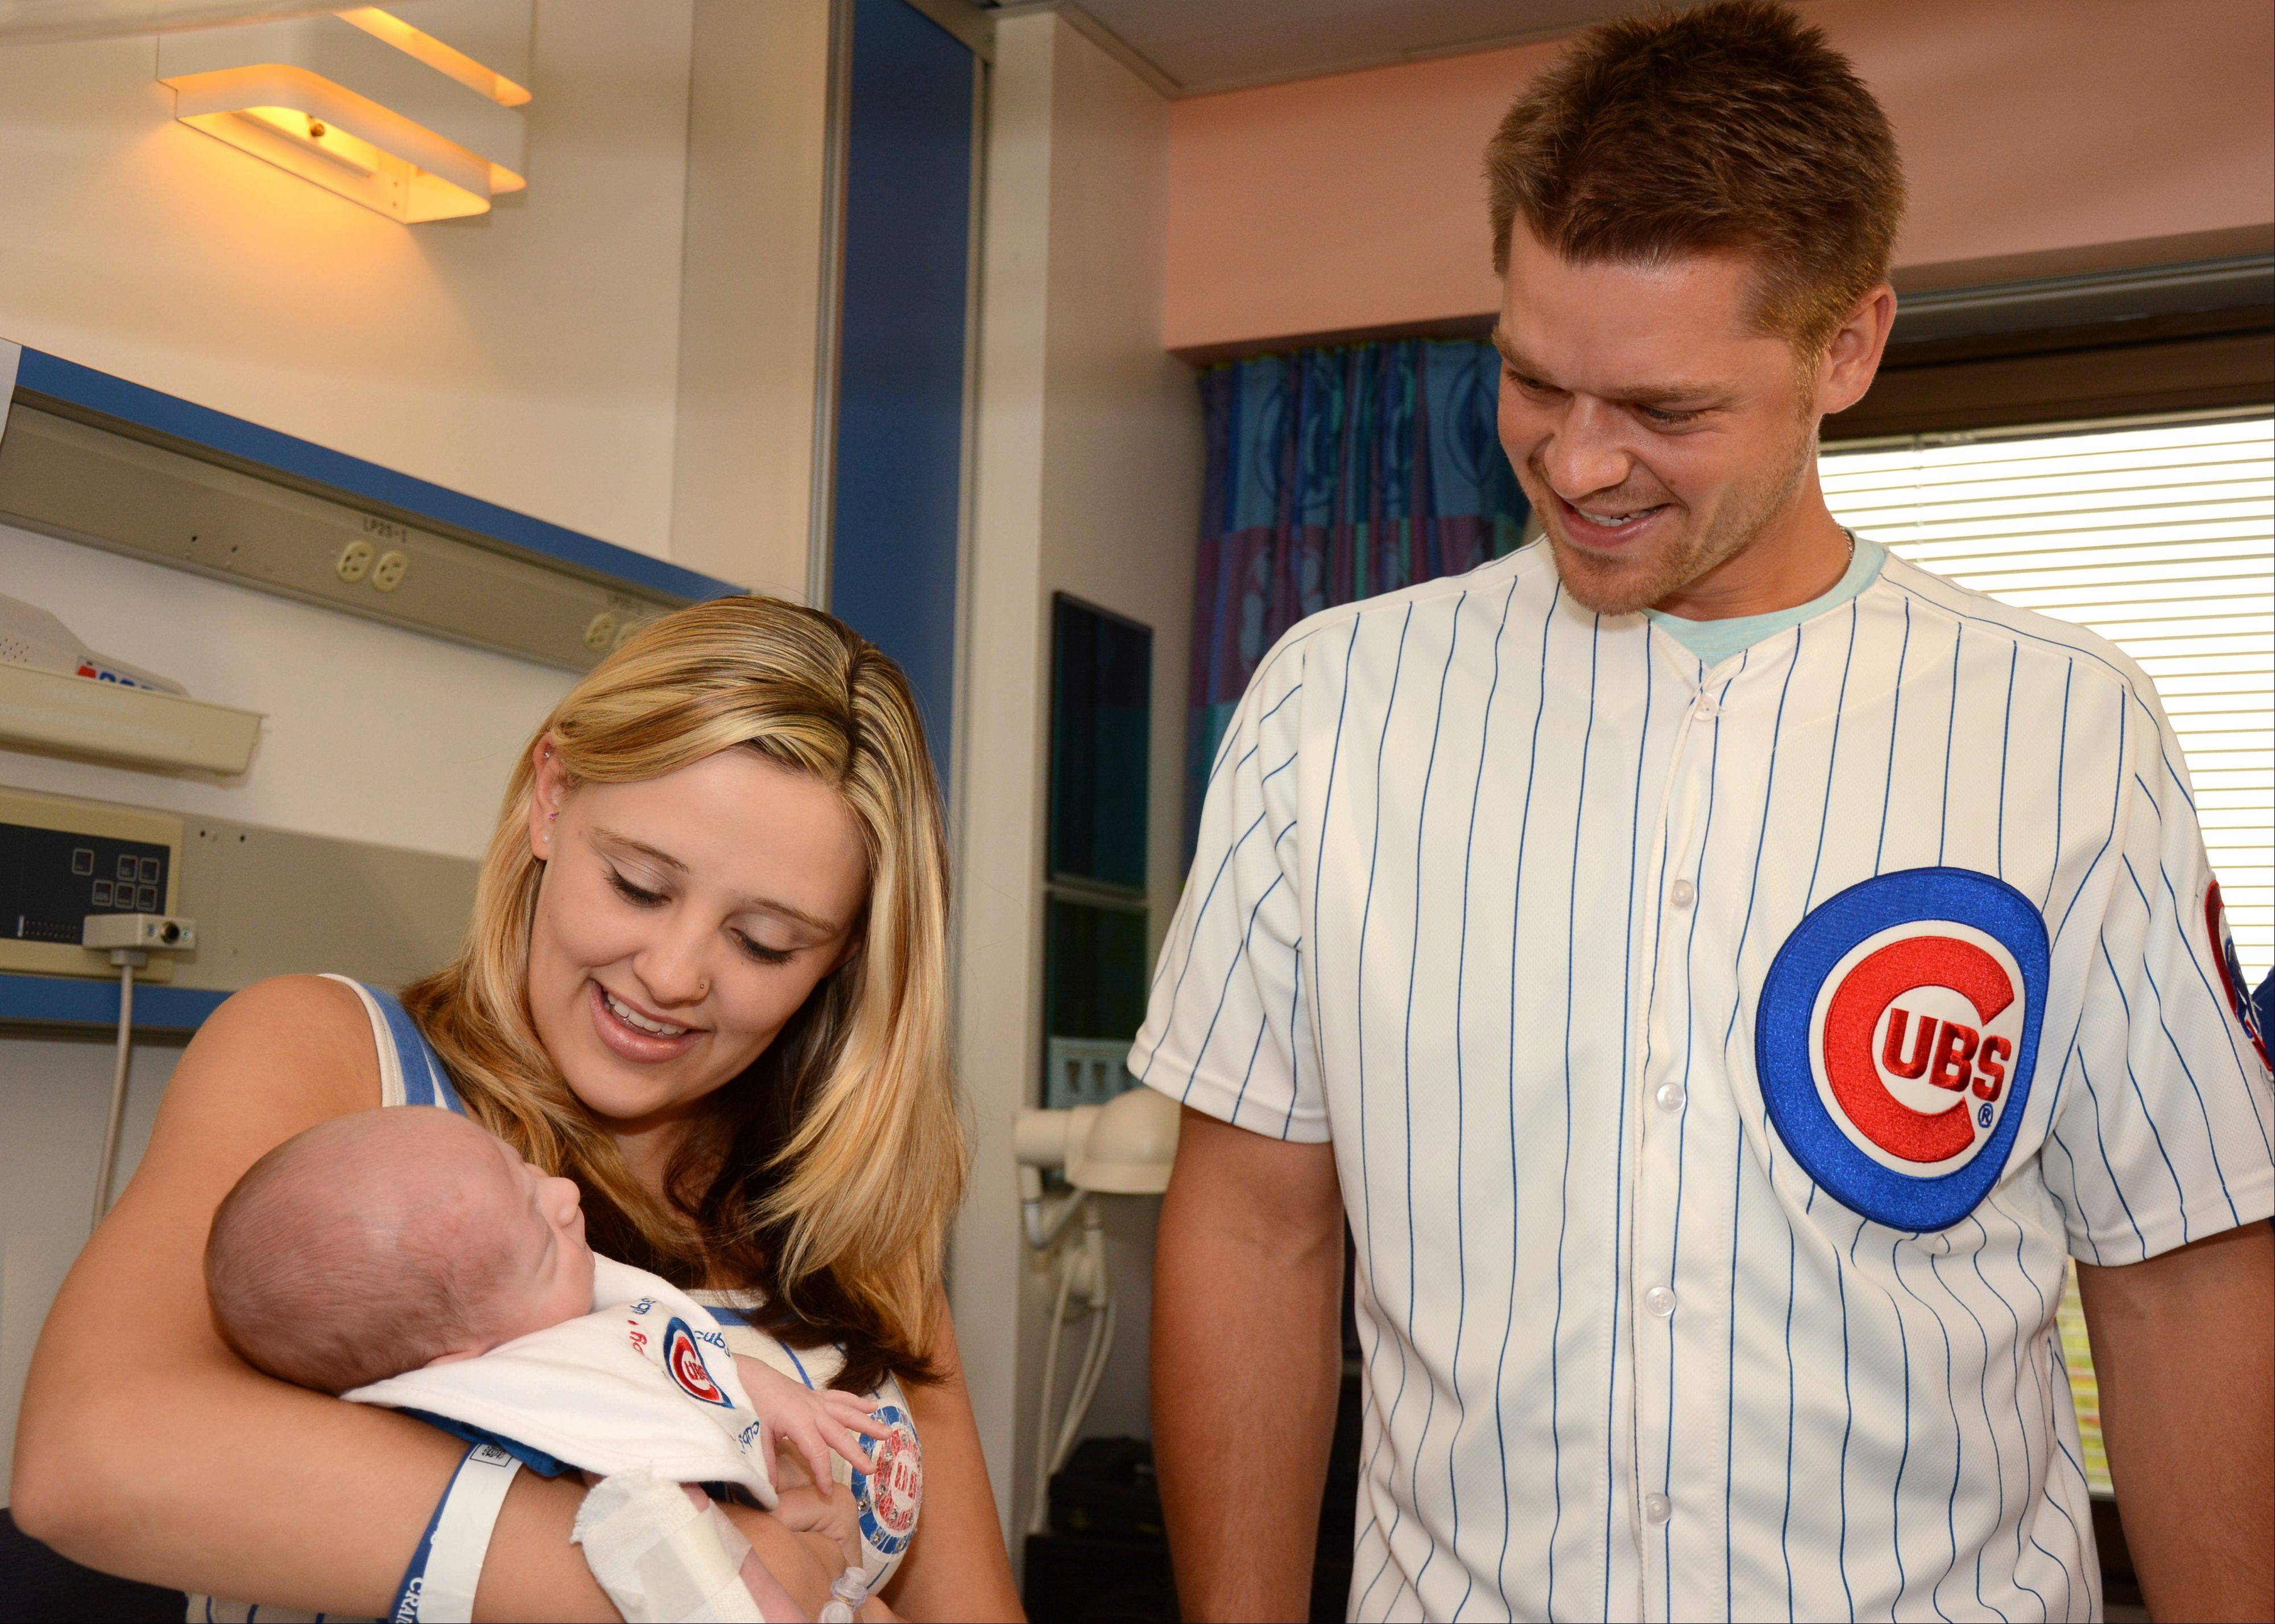 Brook Aguilar holds up her 4-week-old son RyLee Cash Capra to meet Chicago Cubs pitcher Michael Bowden on Monday during his visit to Advocate Children�s Hospital in Park Ridge. Aguilar said she rushed home Sunday night after learning of the visit to get the family�s Cubs gear.